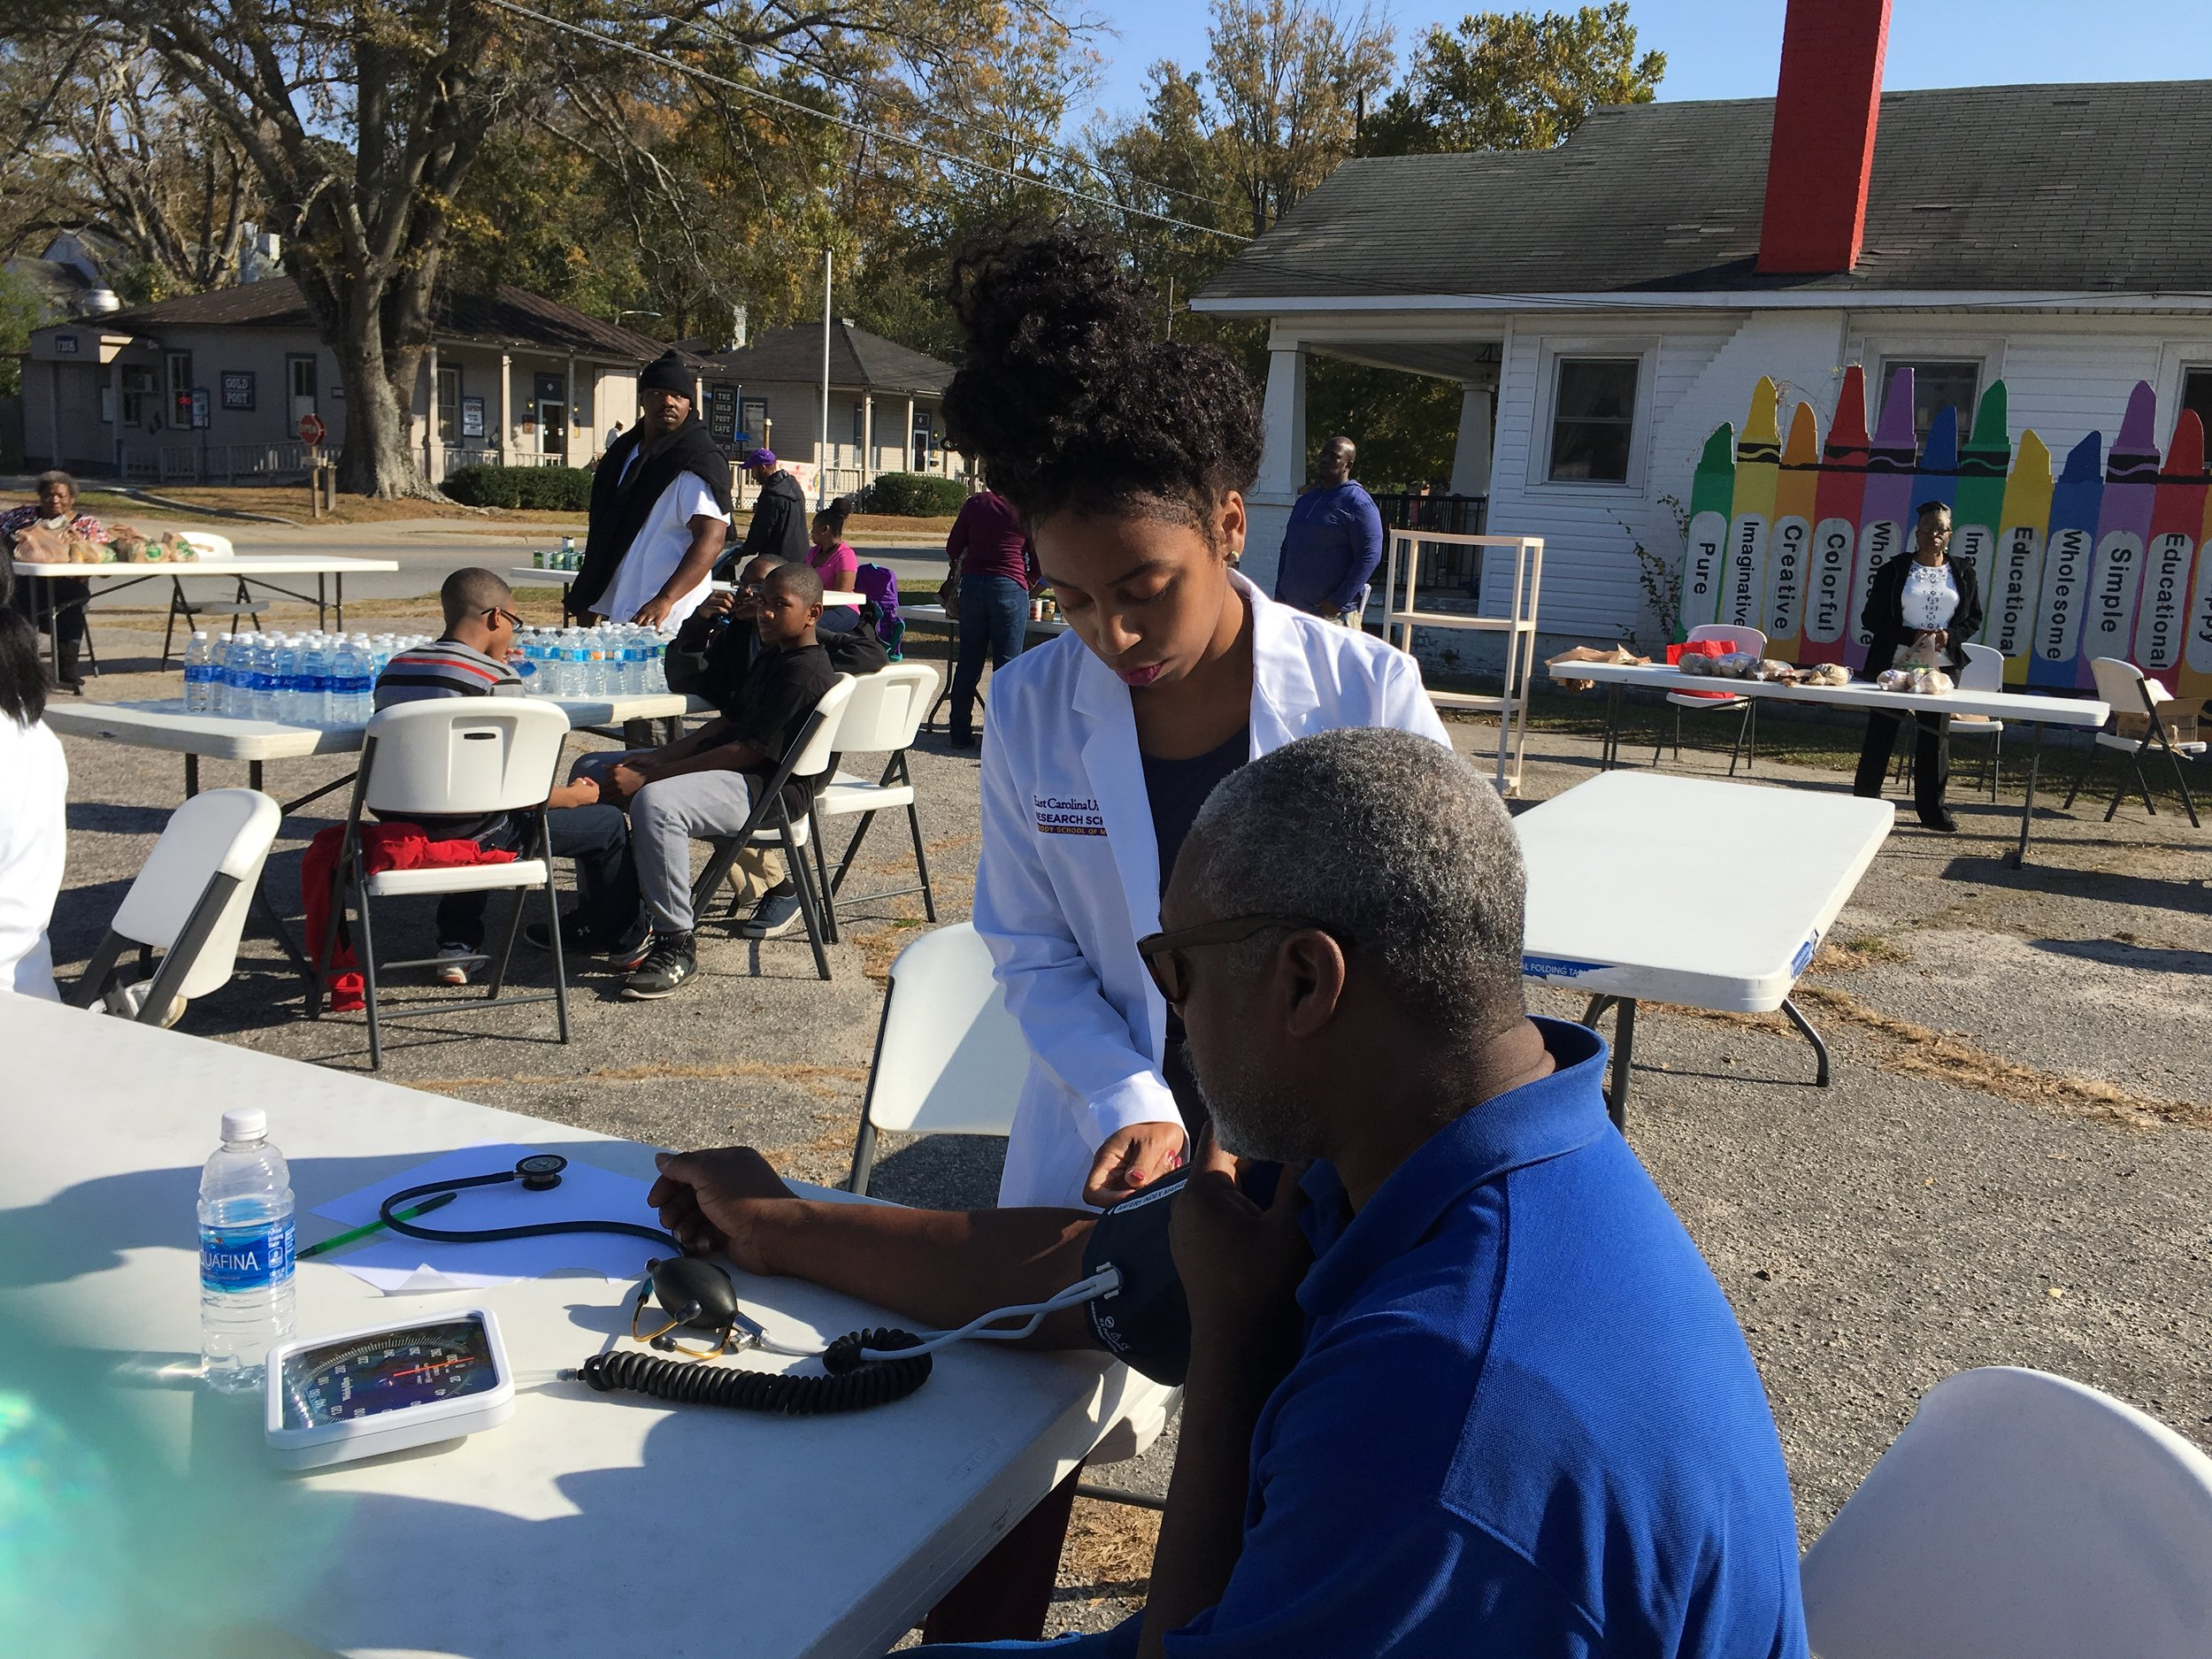 Briana's non-profit UmojaLife hosted a community event in Greenville, North Carolina. The event included medical screening, health education, and a meal give-away.